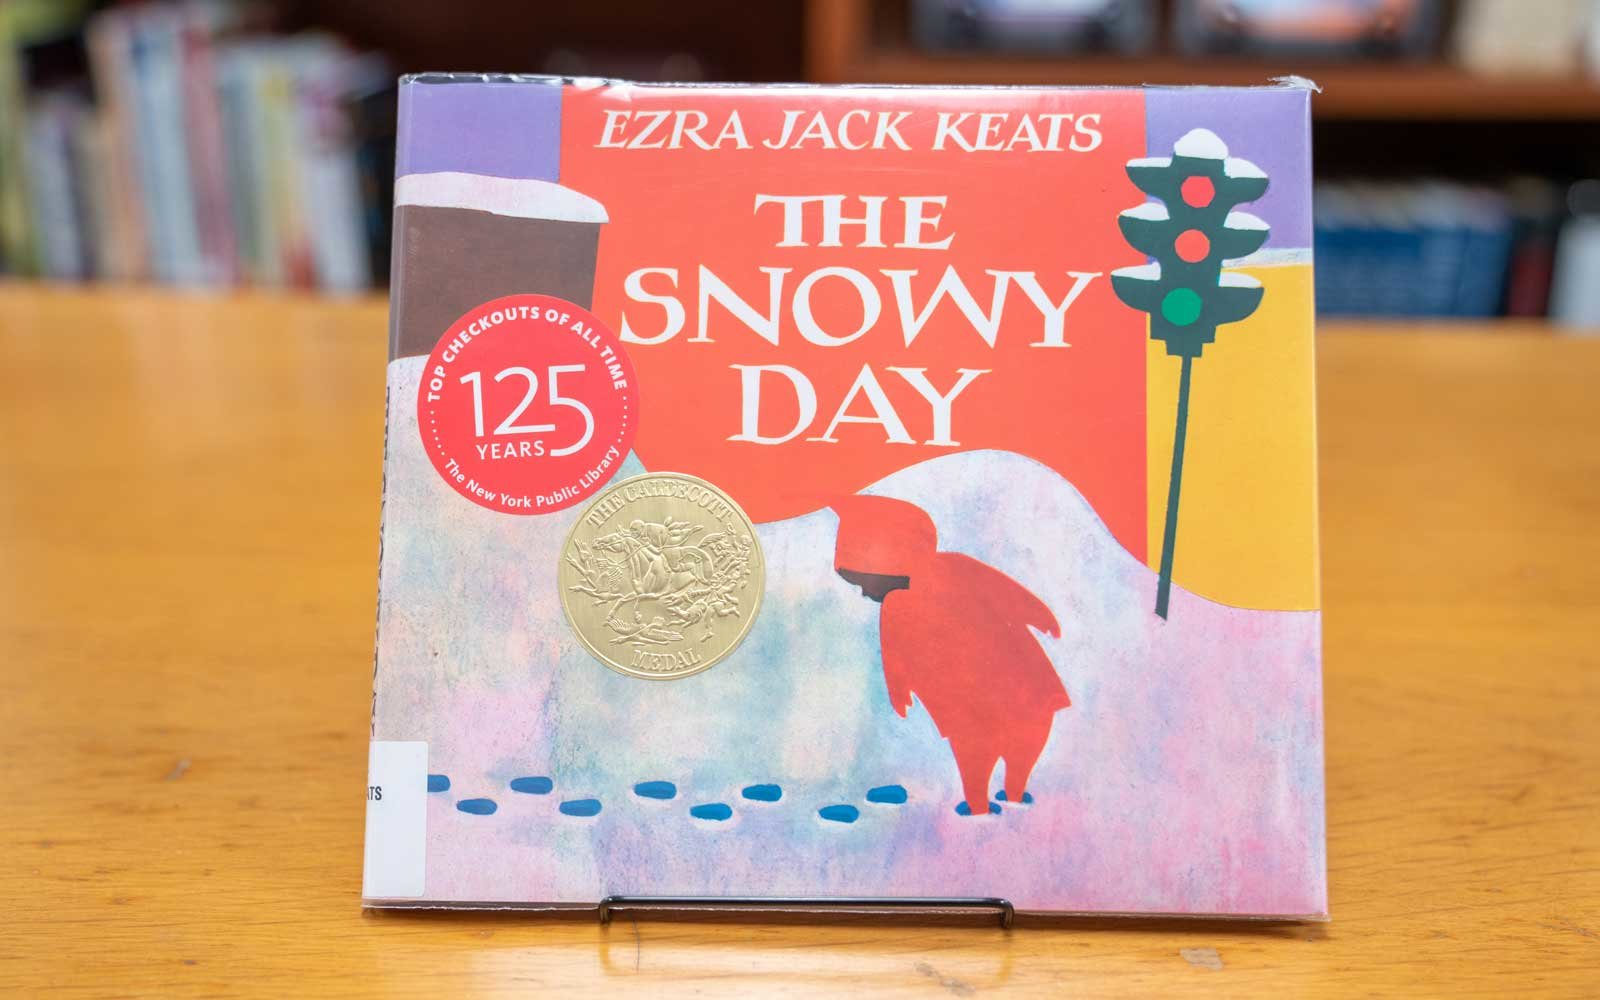 The Snowy Day by Ezra Jack Keats Book on Library Table